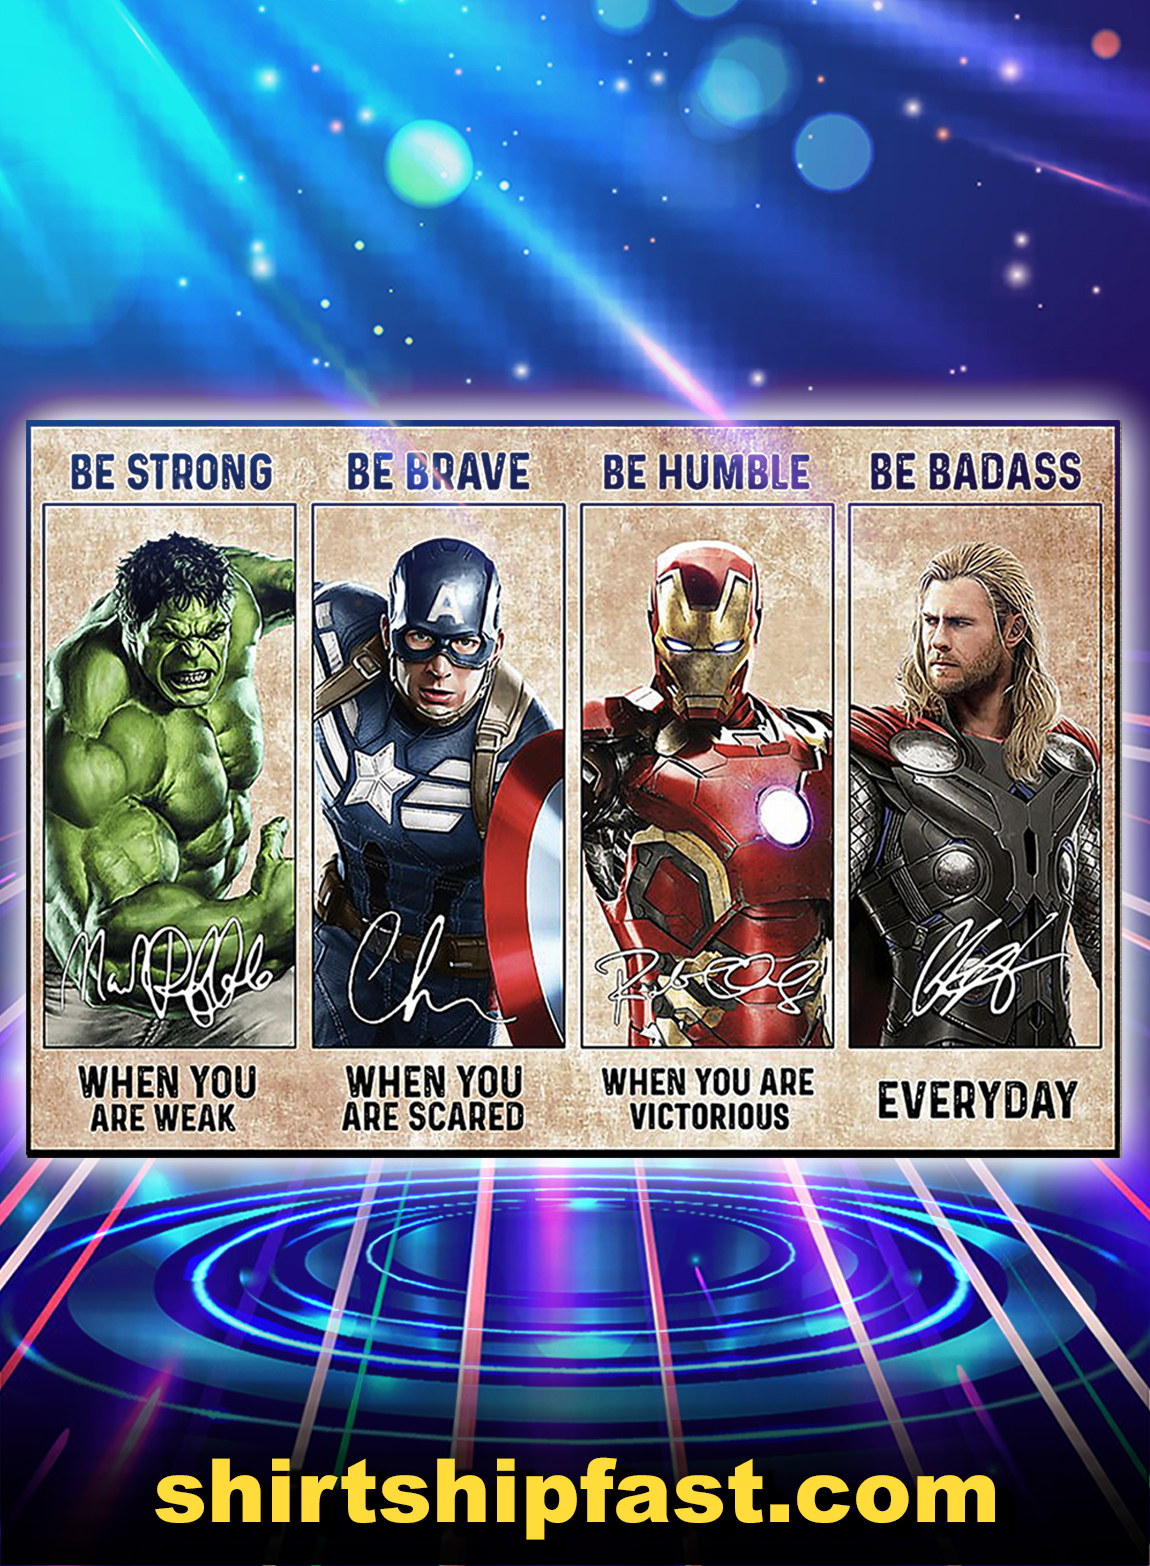 Poster Avengers be strong be brave be humble be badass - A3